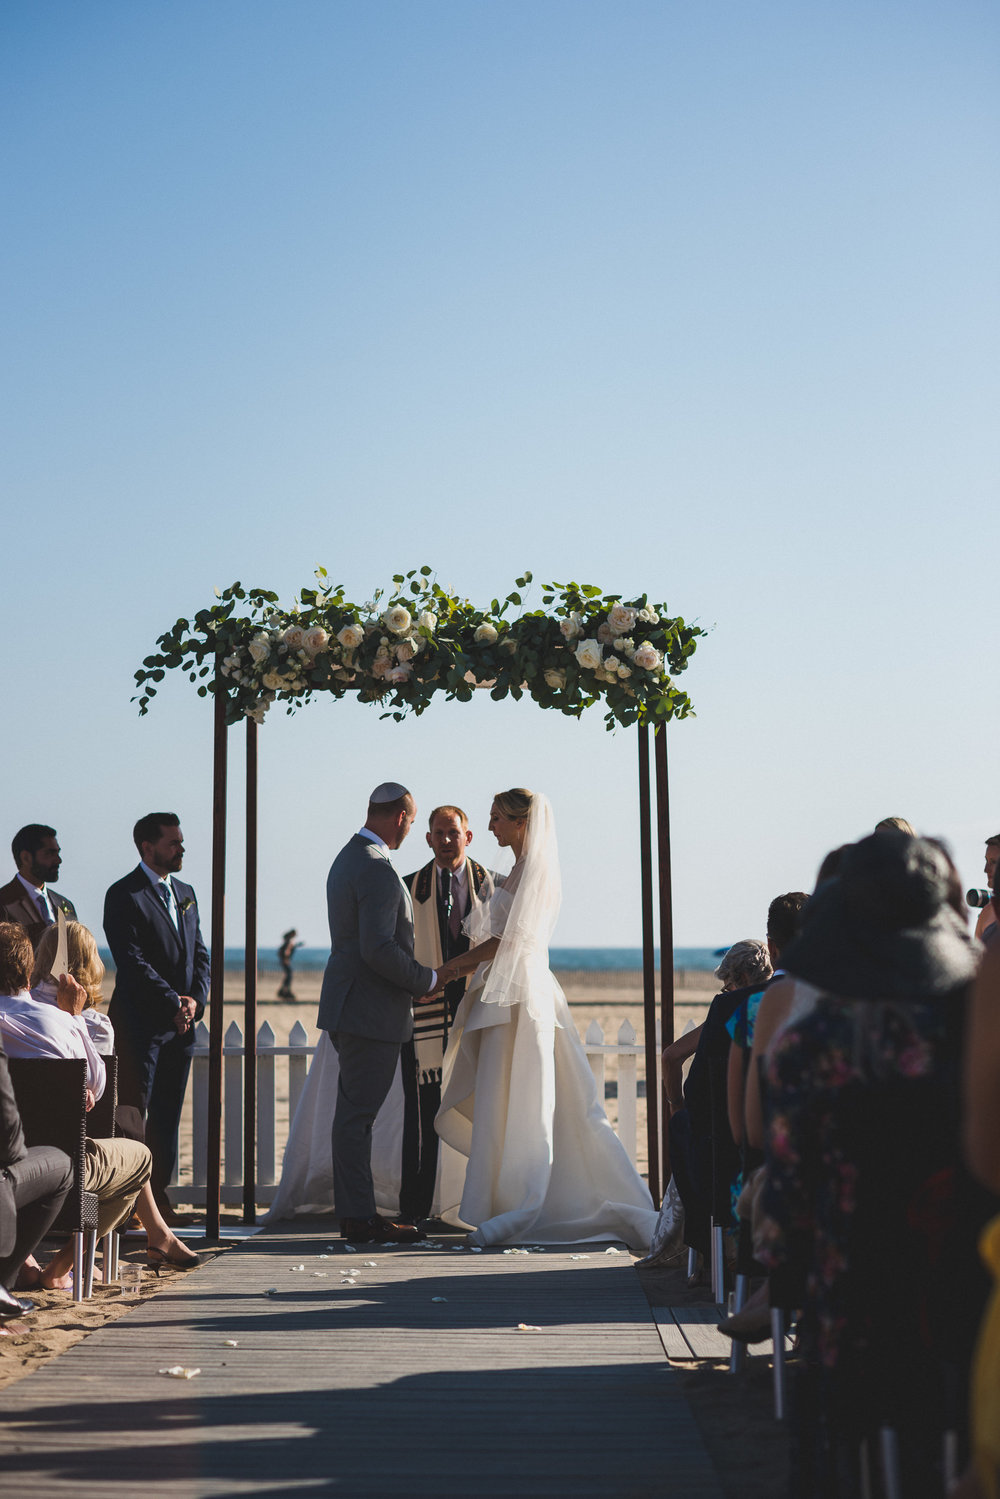 sA+B - The Beach Club - Santa Monica CA - 05 Ceremony-56.jpg